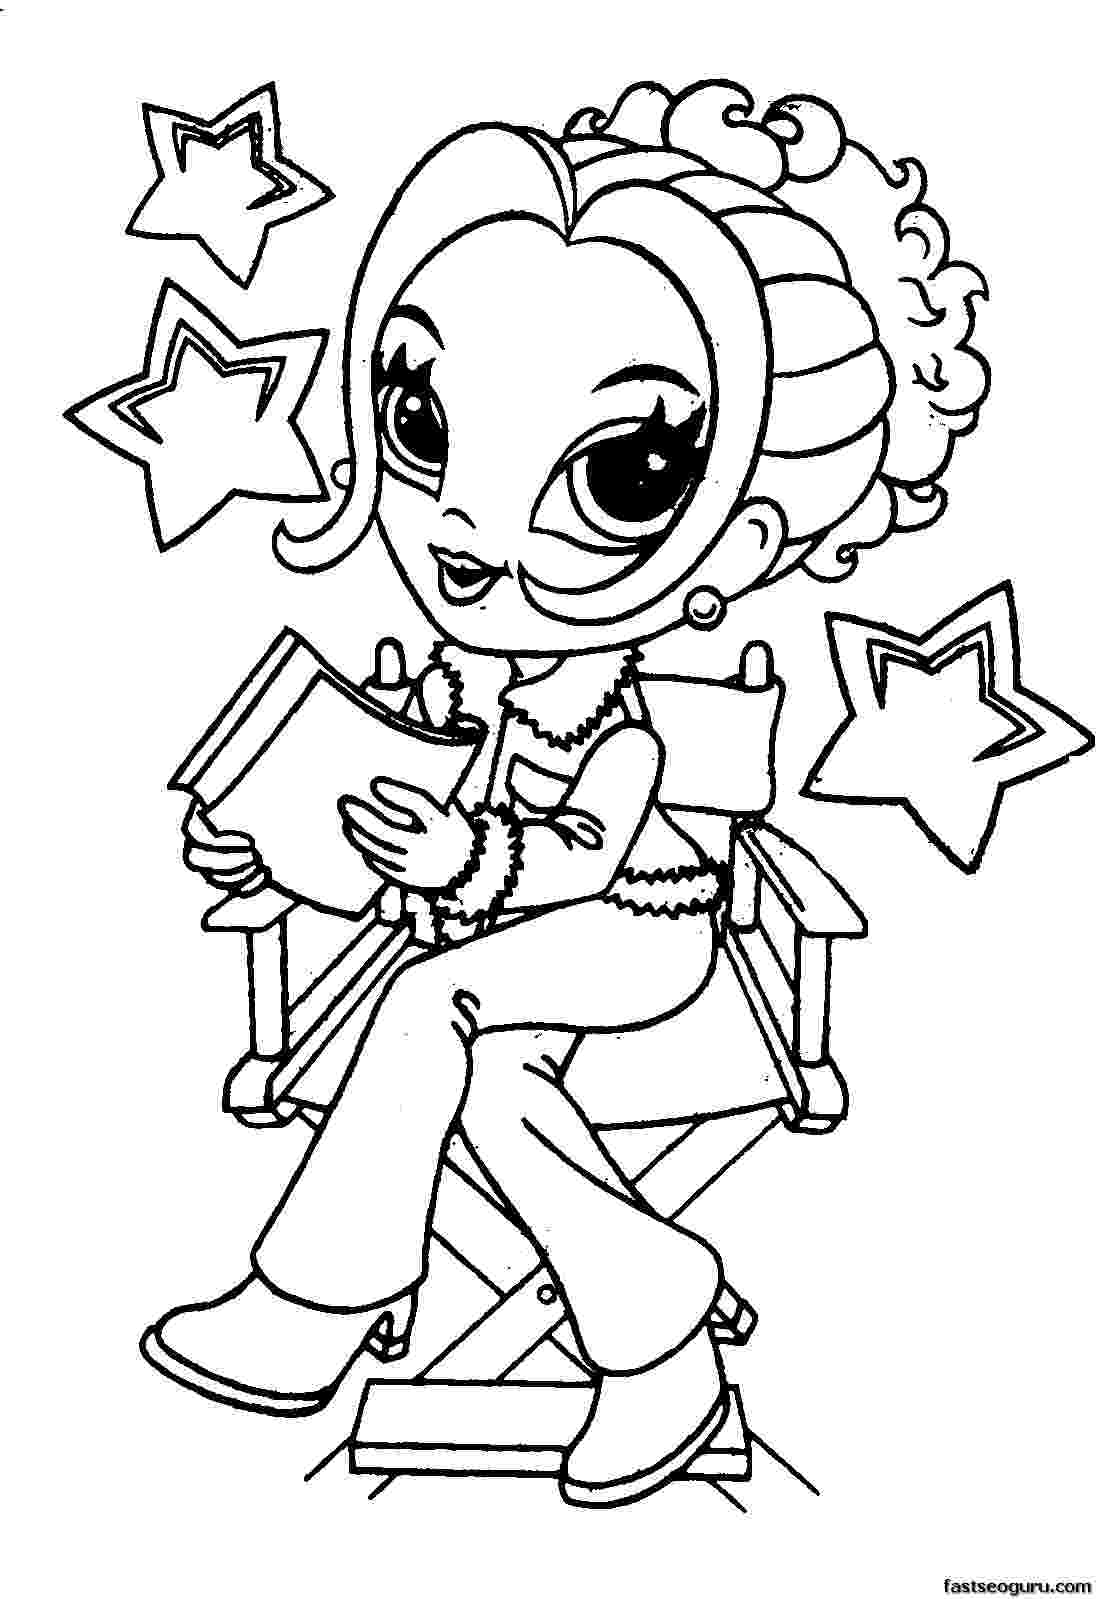 printable coloring sheets for girls cute girl coloring pages to download and print for free printable coloring girls sheets for